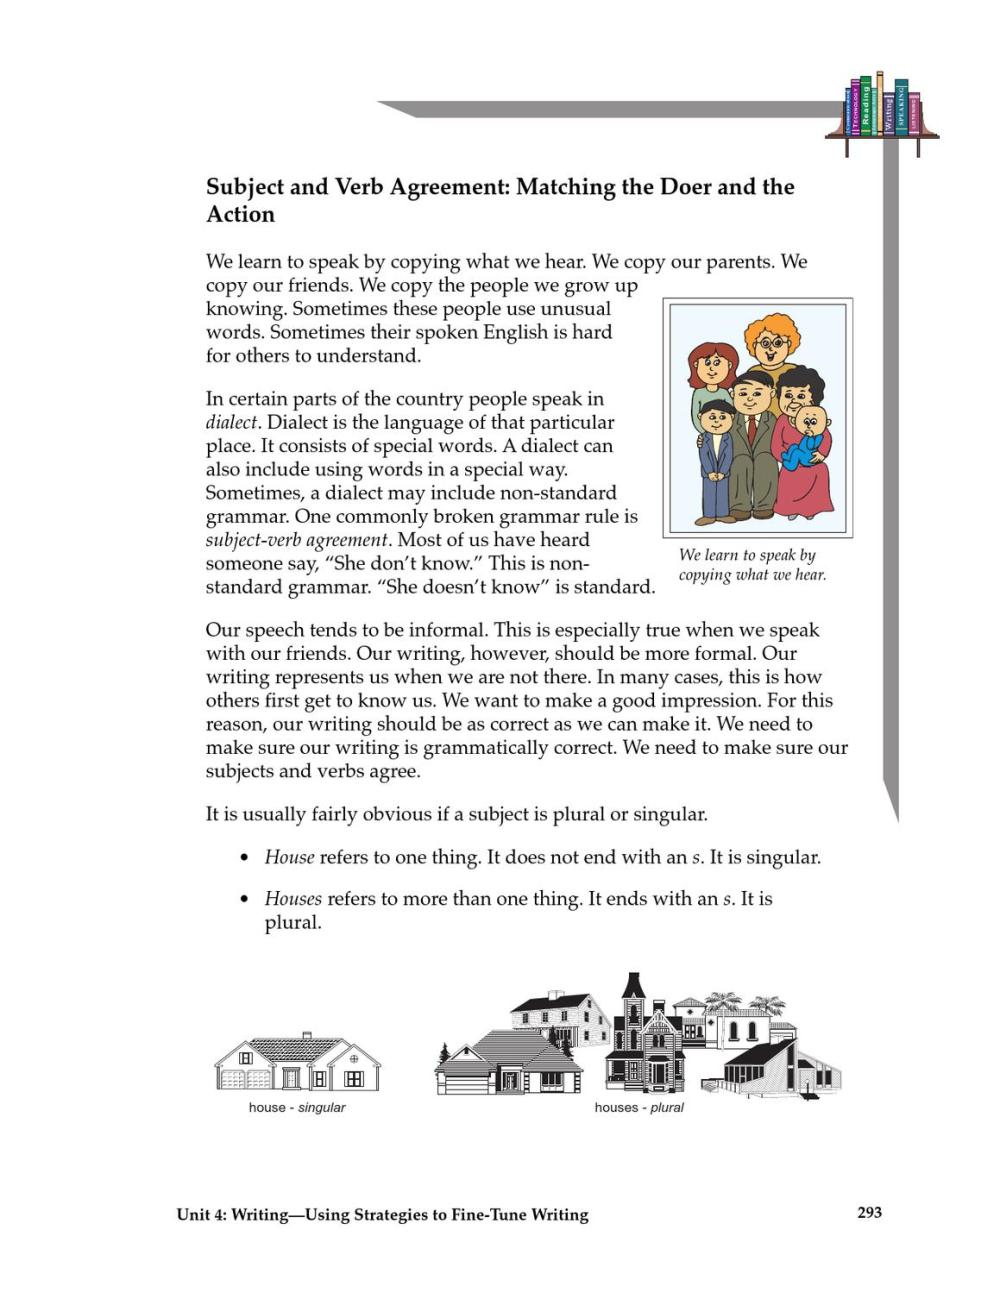 medium resolution of Subject-Verb-Agreement-Handout-and-Exercises by Lauren Mason - issuu